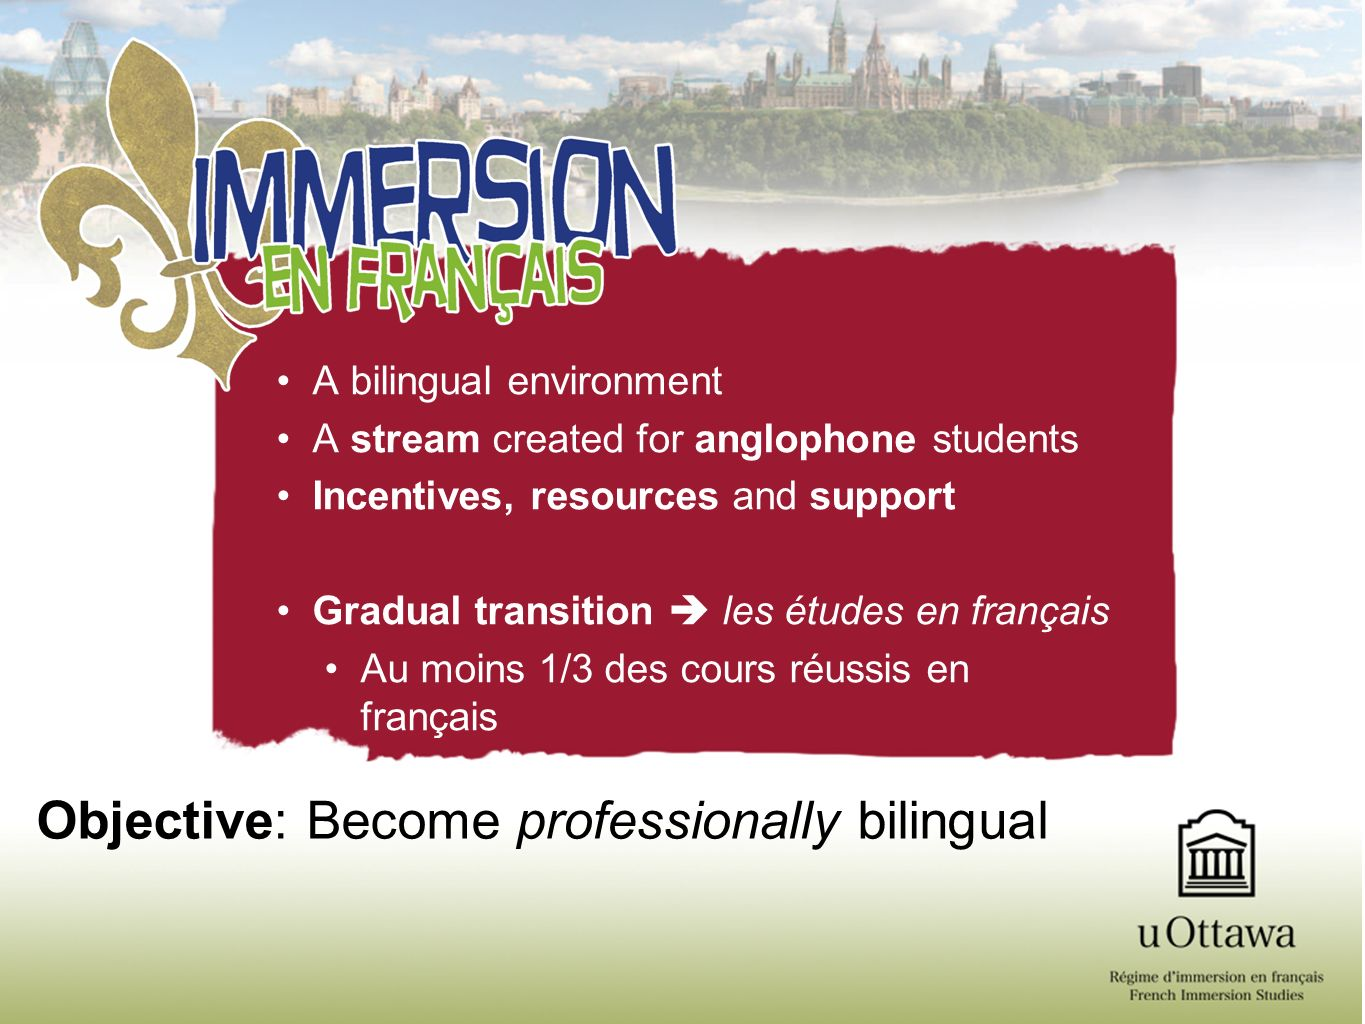 Objective: Become professionally bilingual